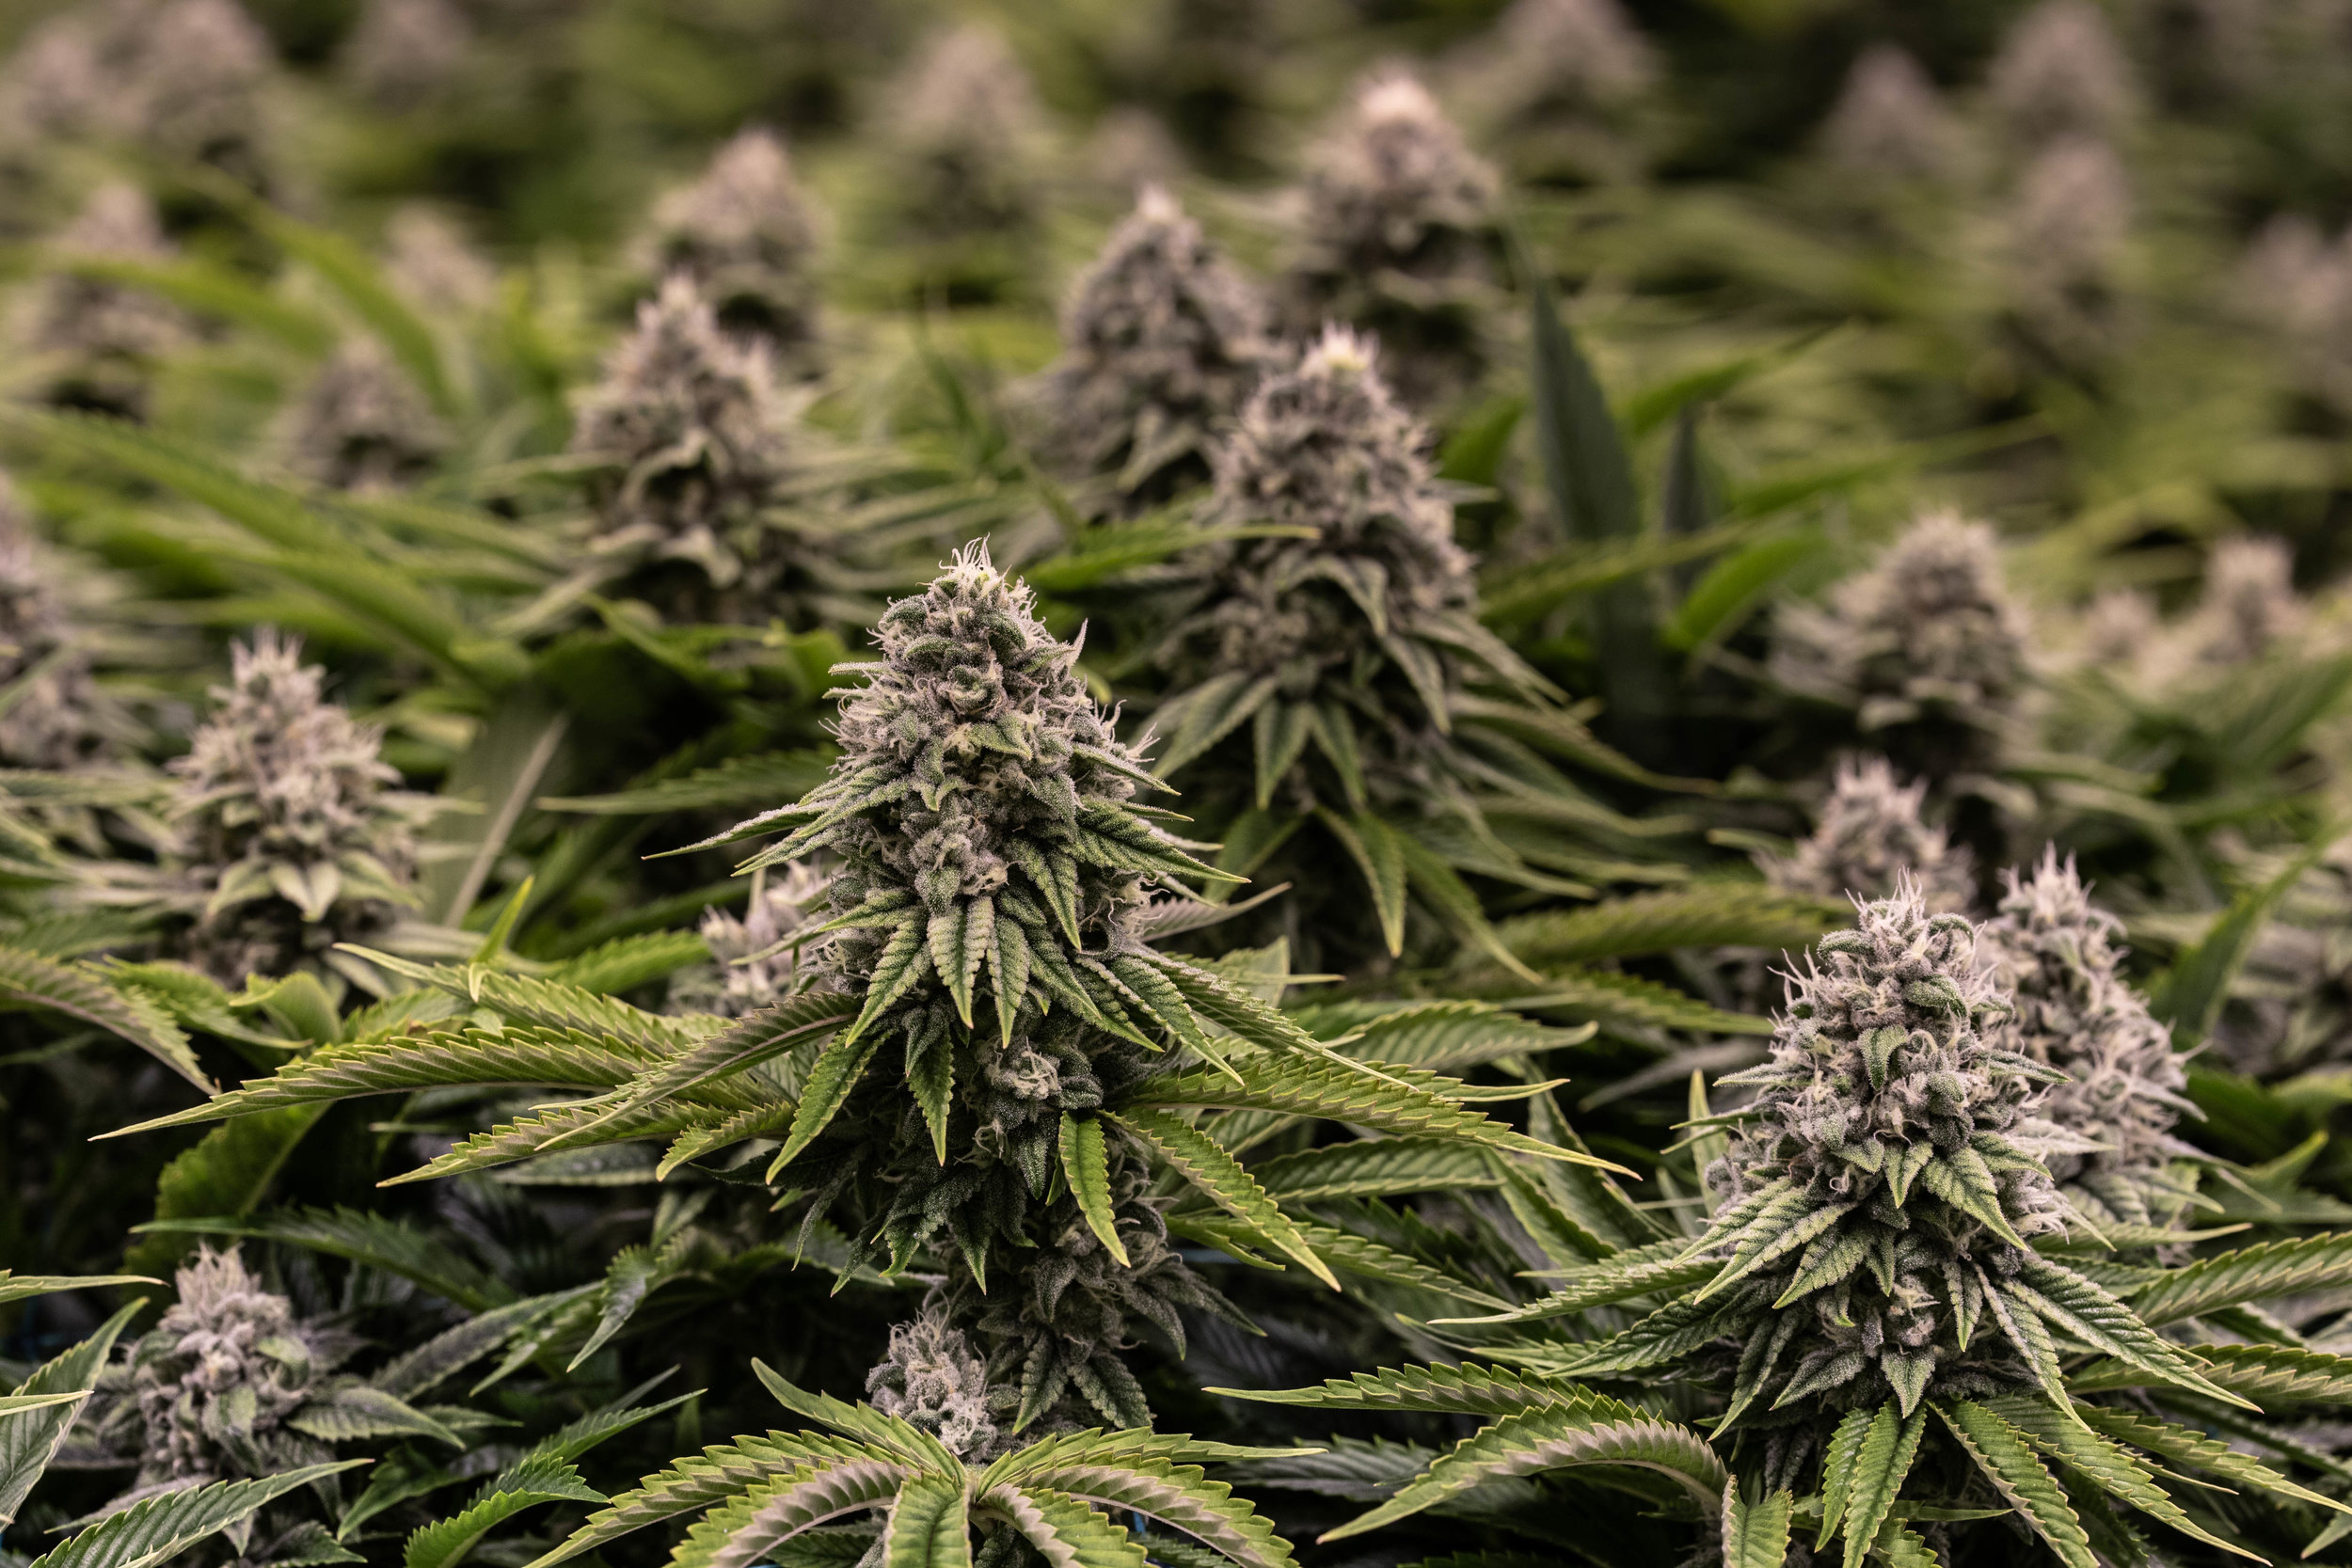 2019_02_19_ZURCULES_Cultivation_Flowering_Harmony_Dispensary_Cannabis_Marijuana_14.jpg